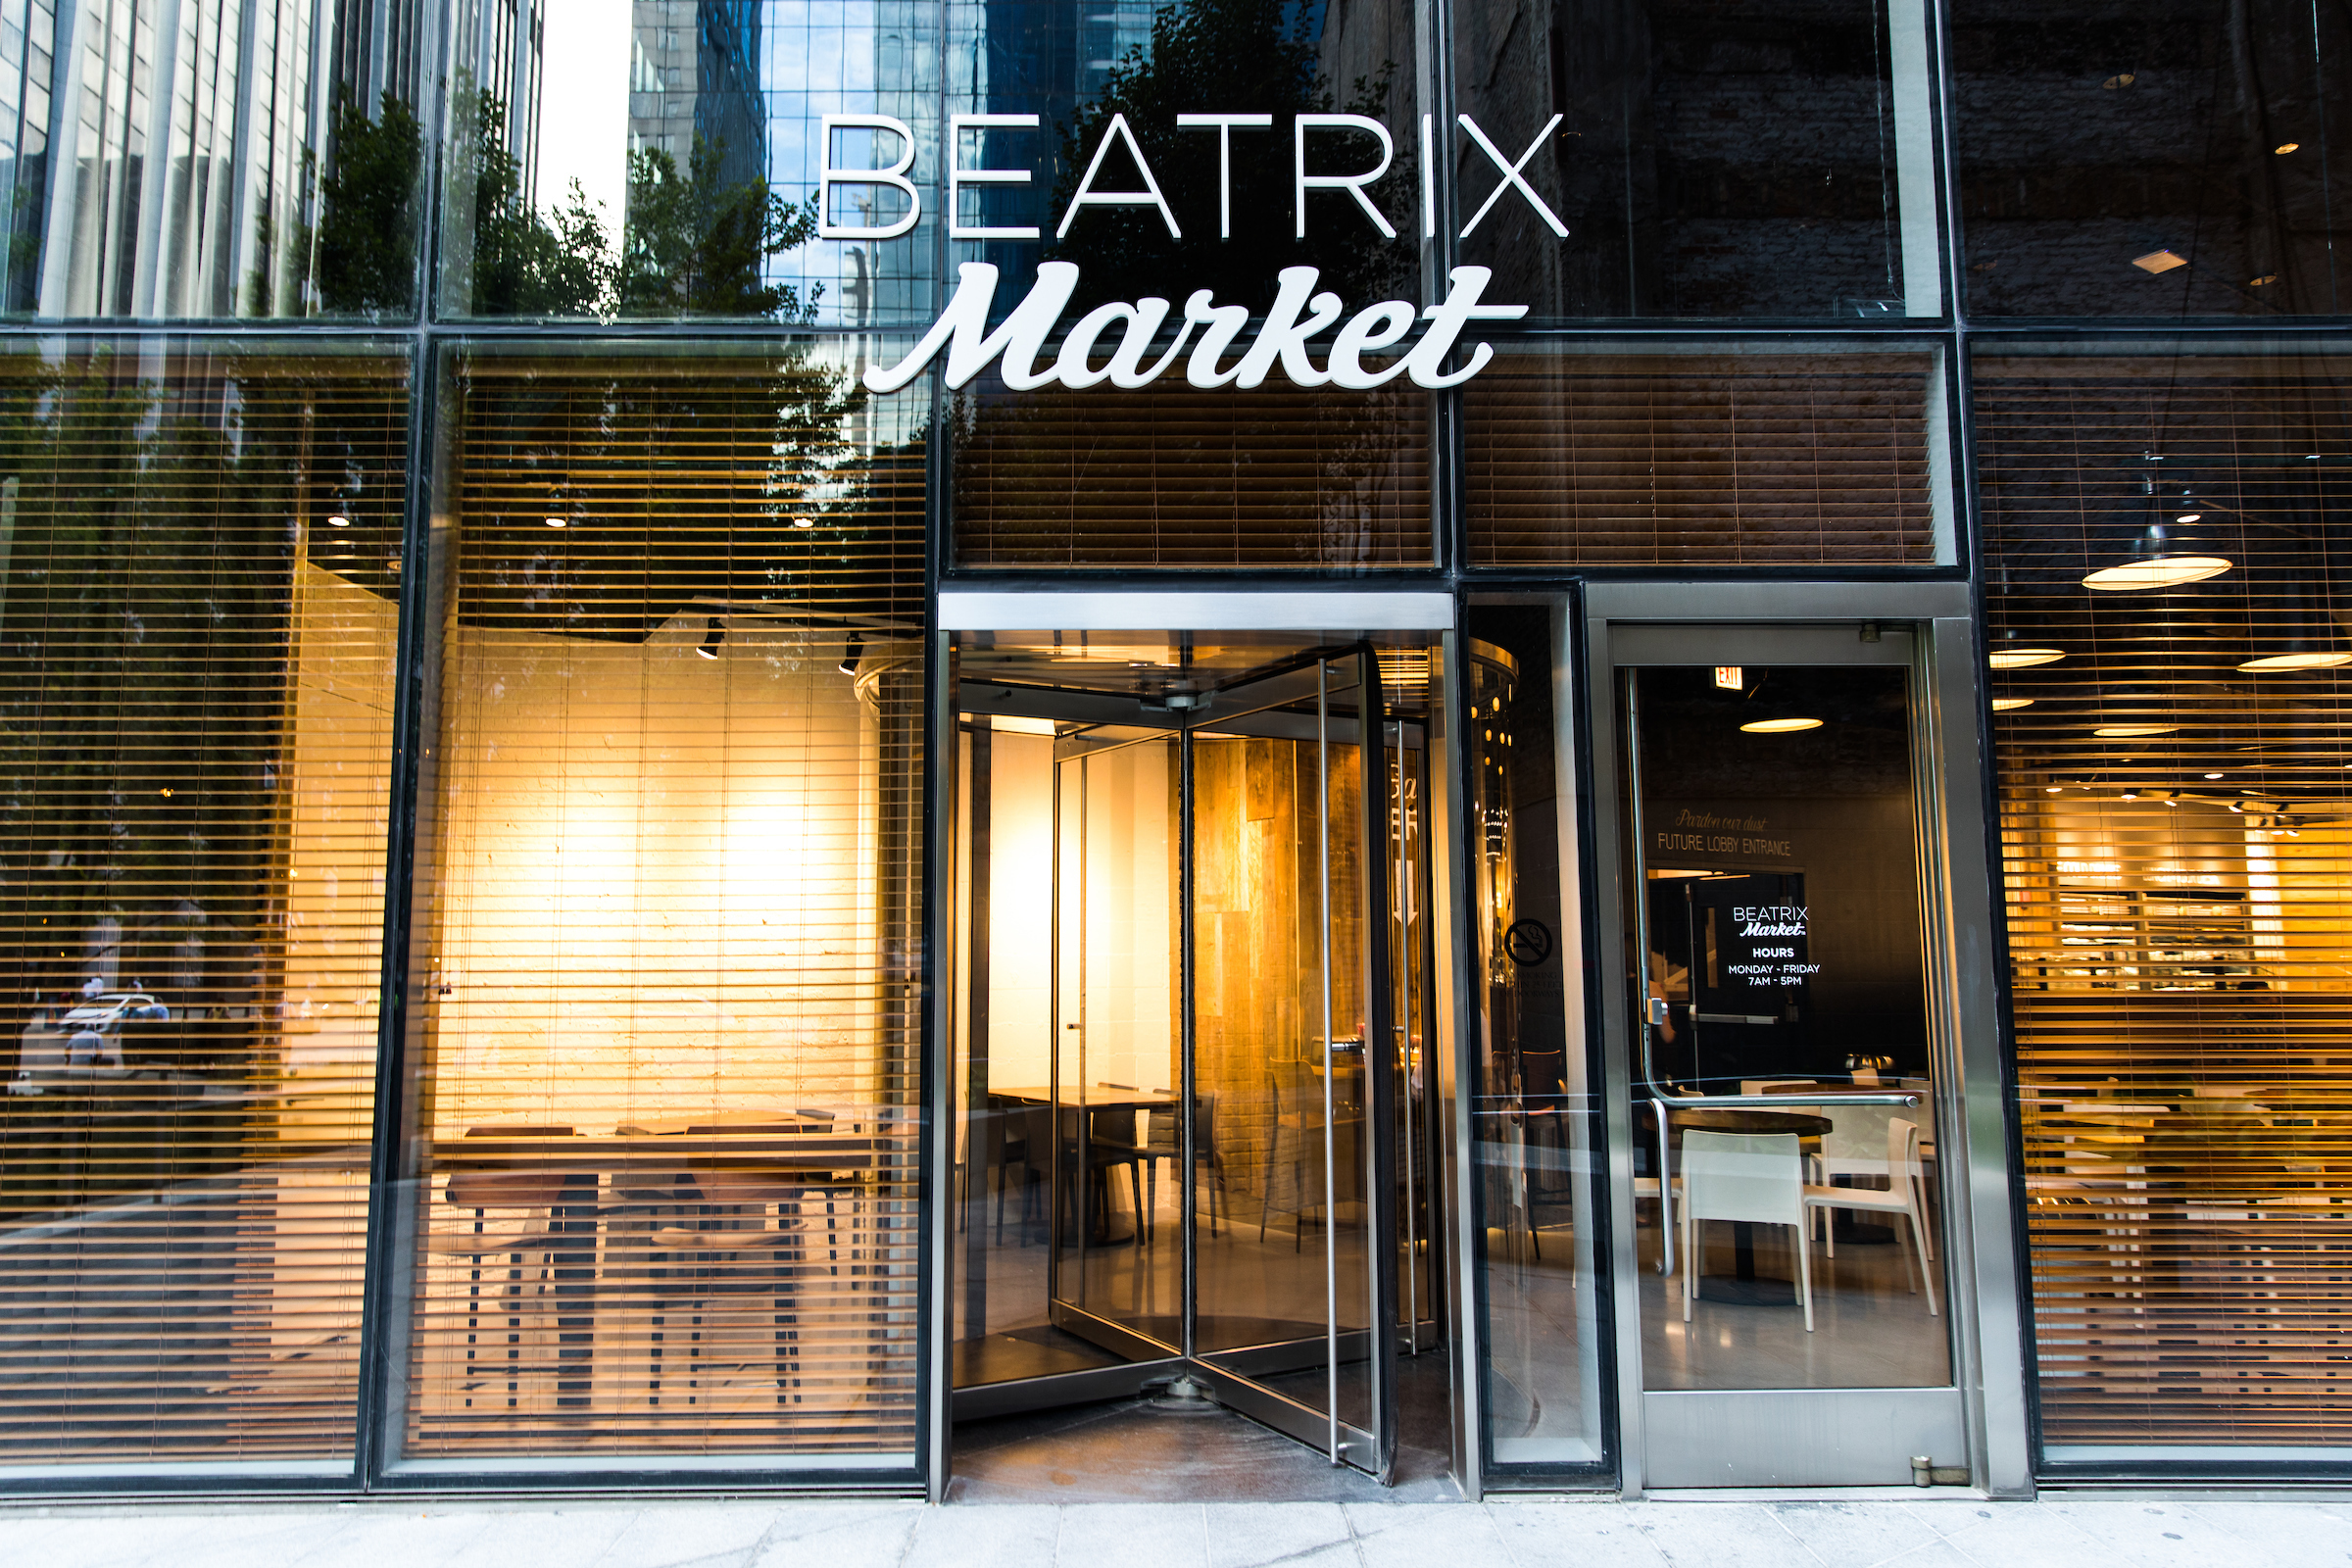 Entrance to Beatrix Market